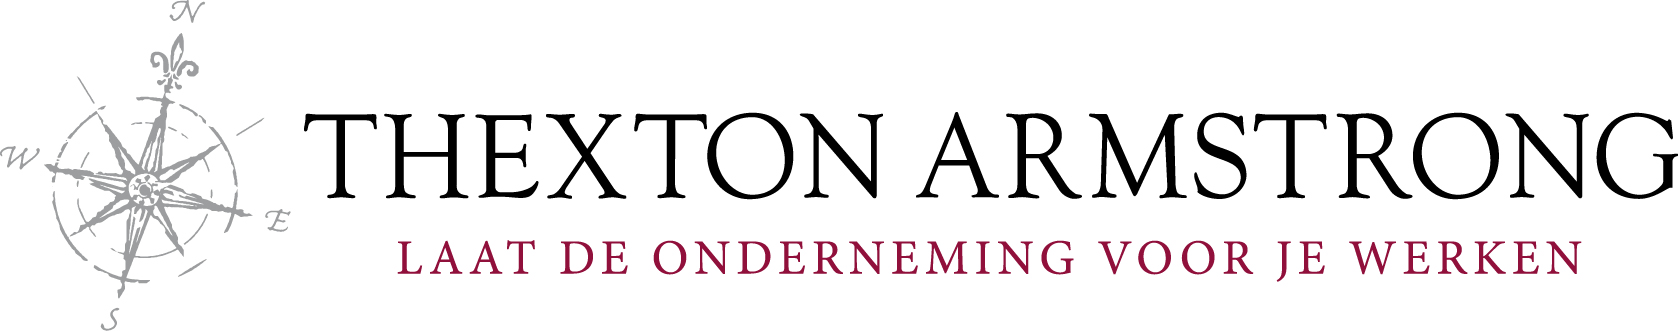 Homepage Thexton Armstrong